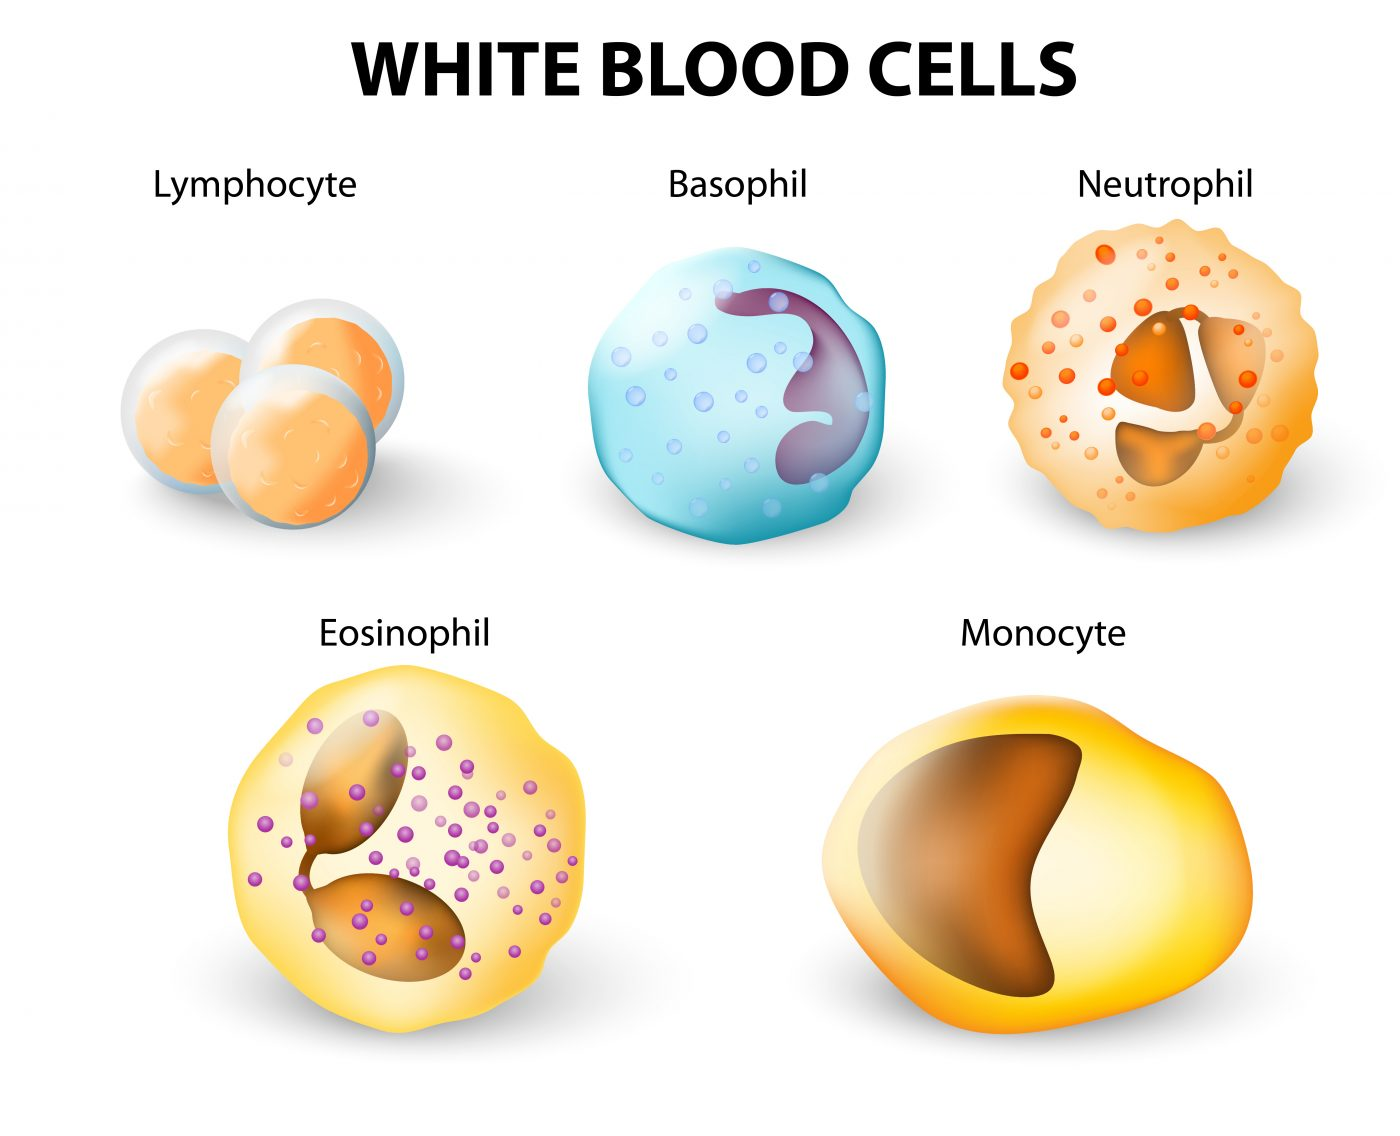 study of white blood cells Va researchers and colleagues in iowa showed in a lab study how neutrophils—the most common type of white blood cell—undergo changes when infected by the common pathogen h pylori.